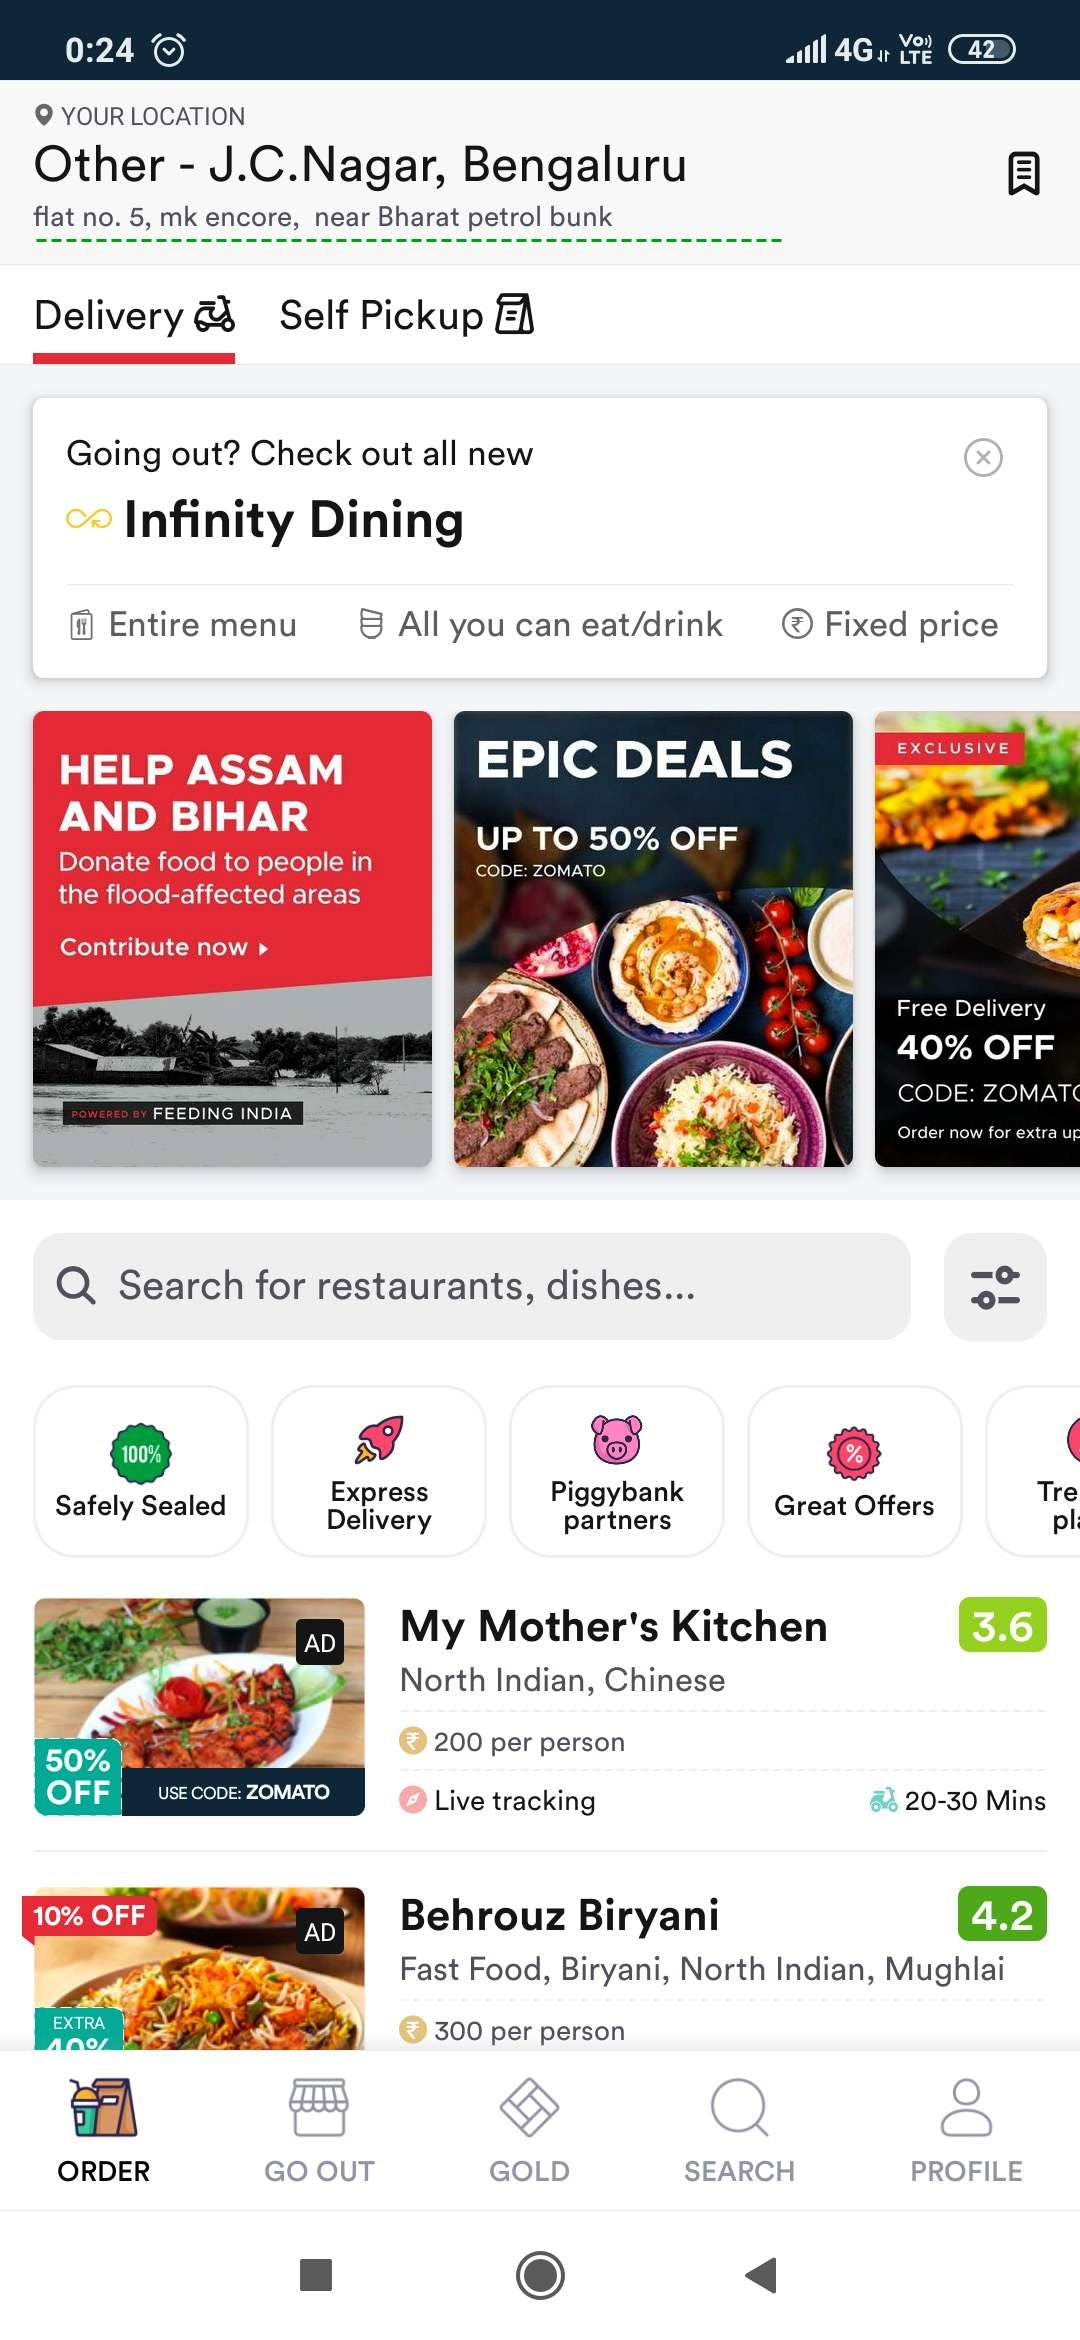 After The Infinity Stone,  Comes Zomato Infinity Dining